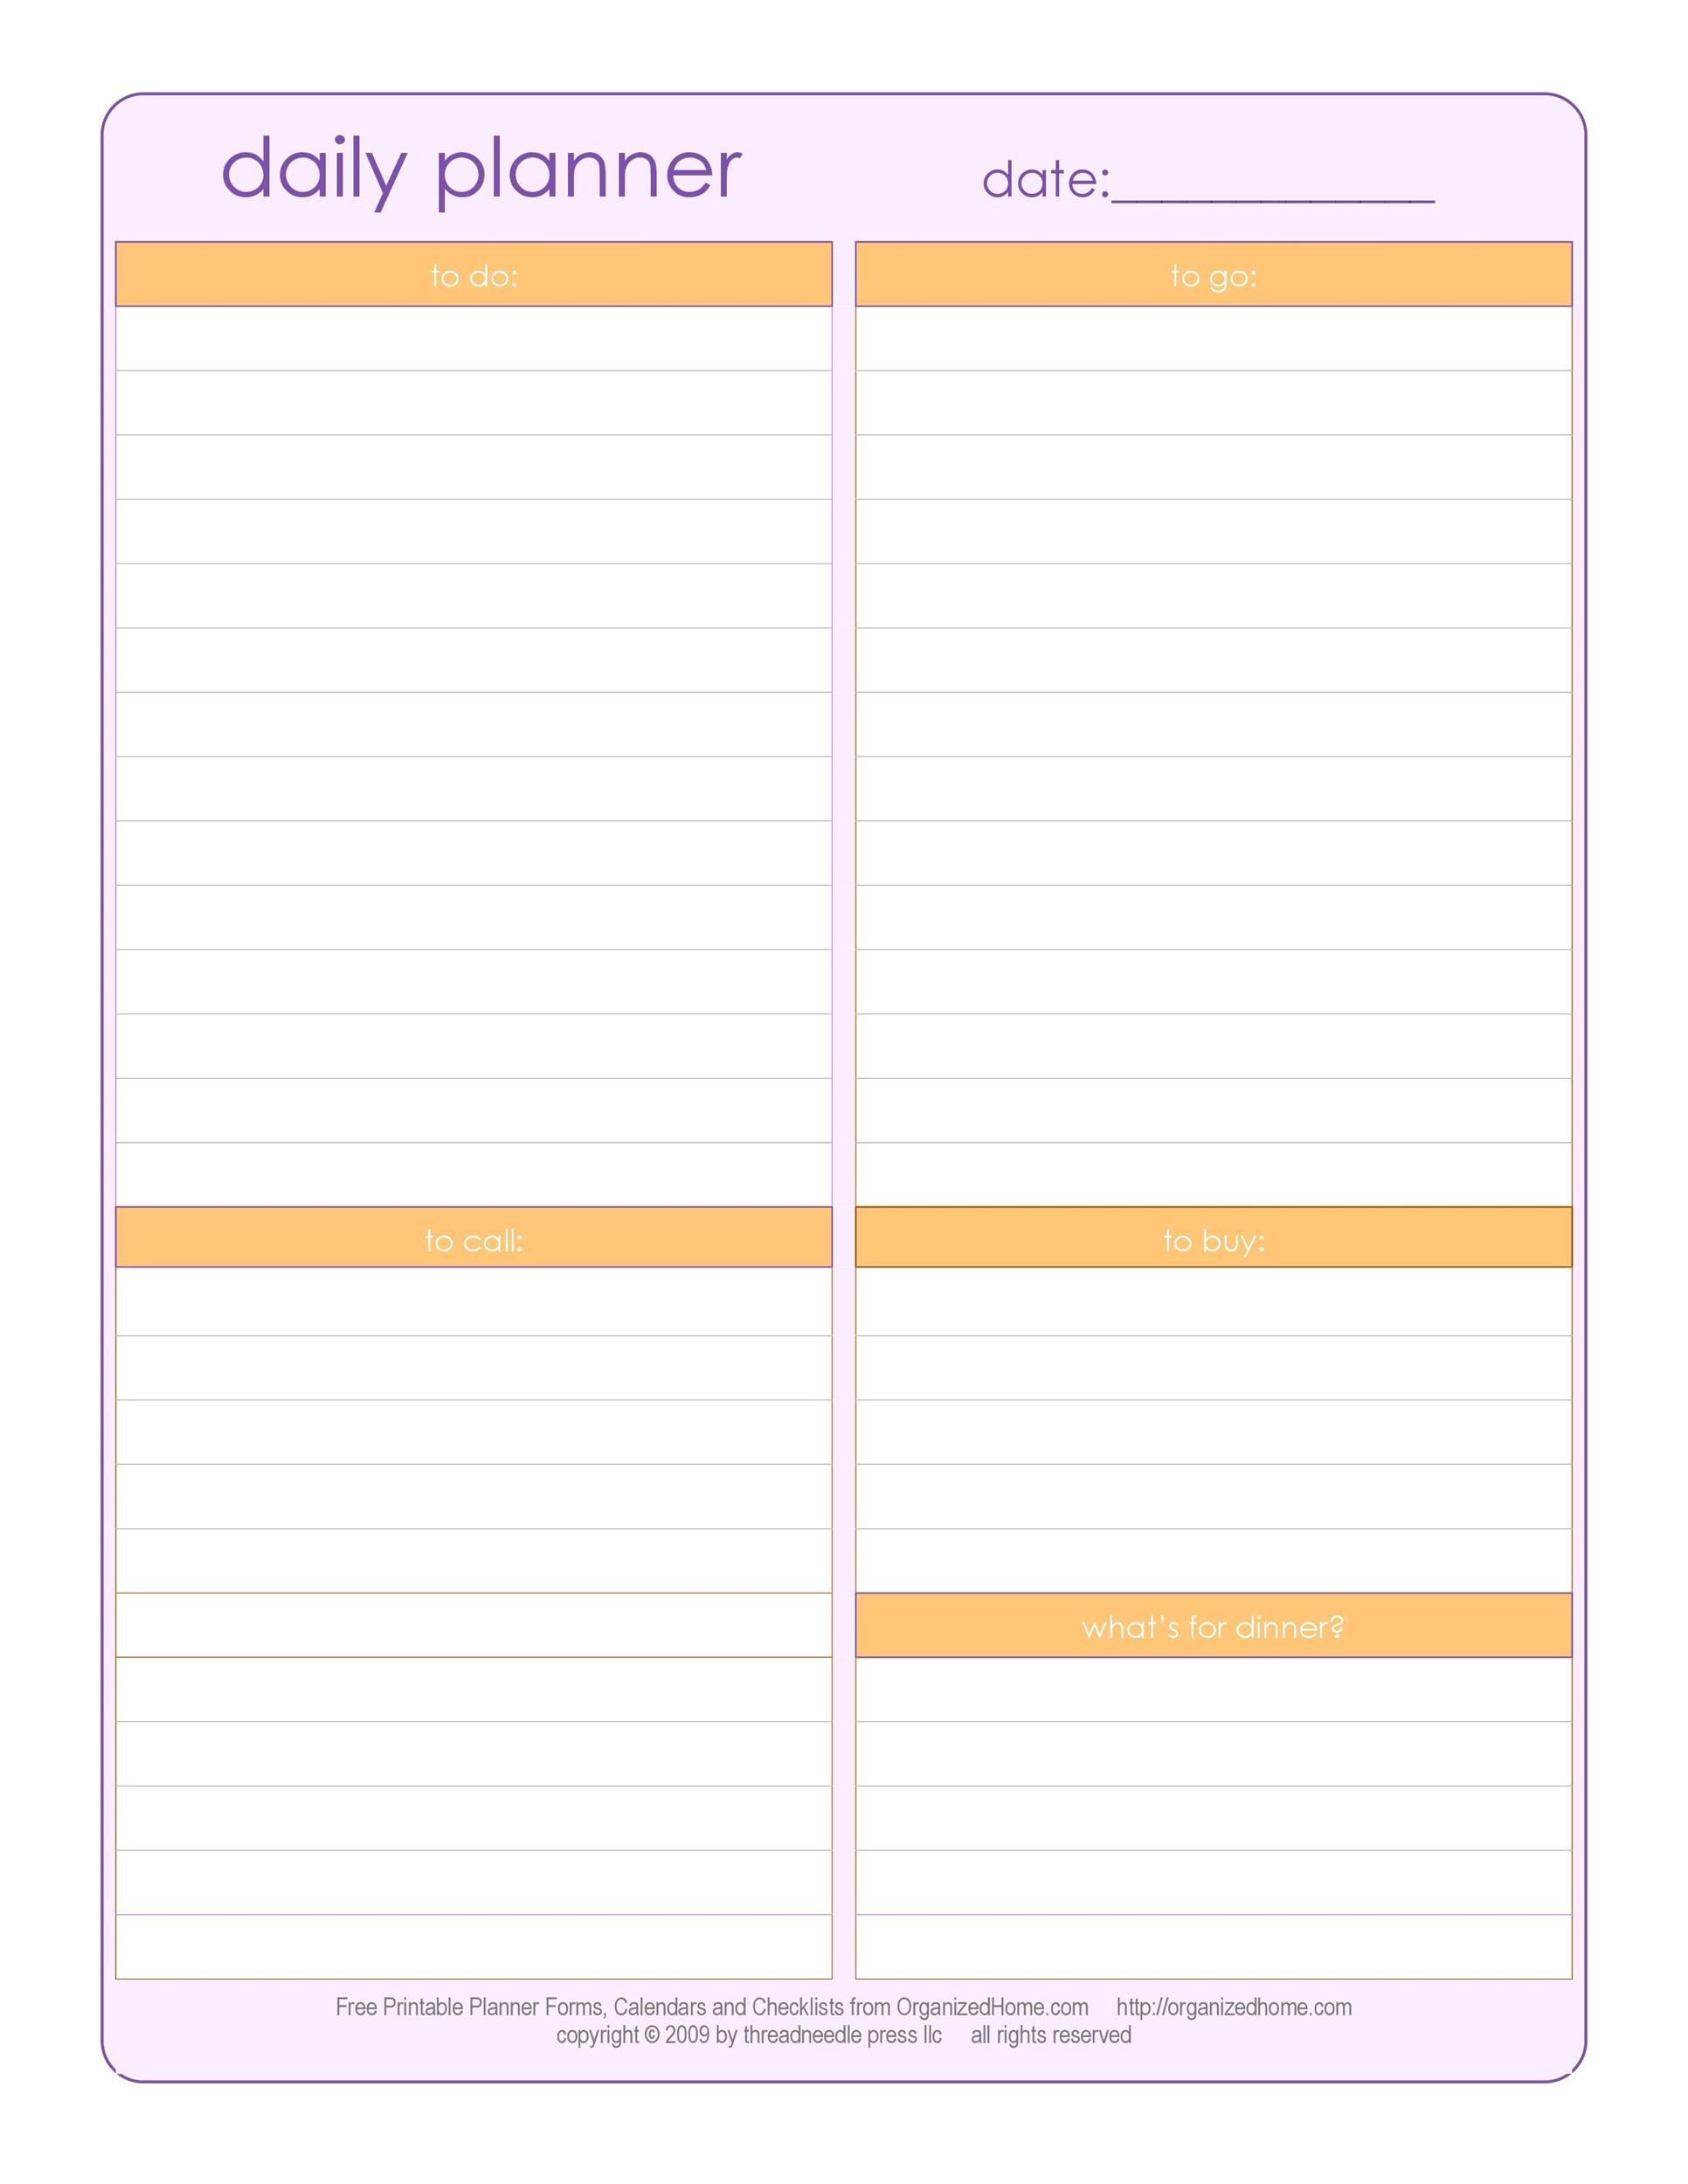 Free daily planner template 02